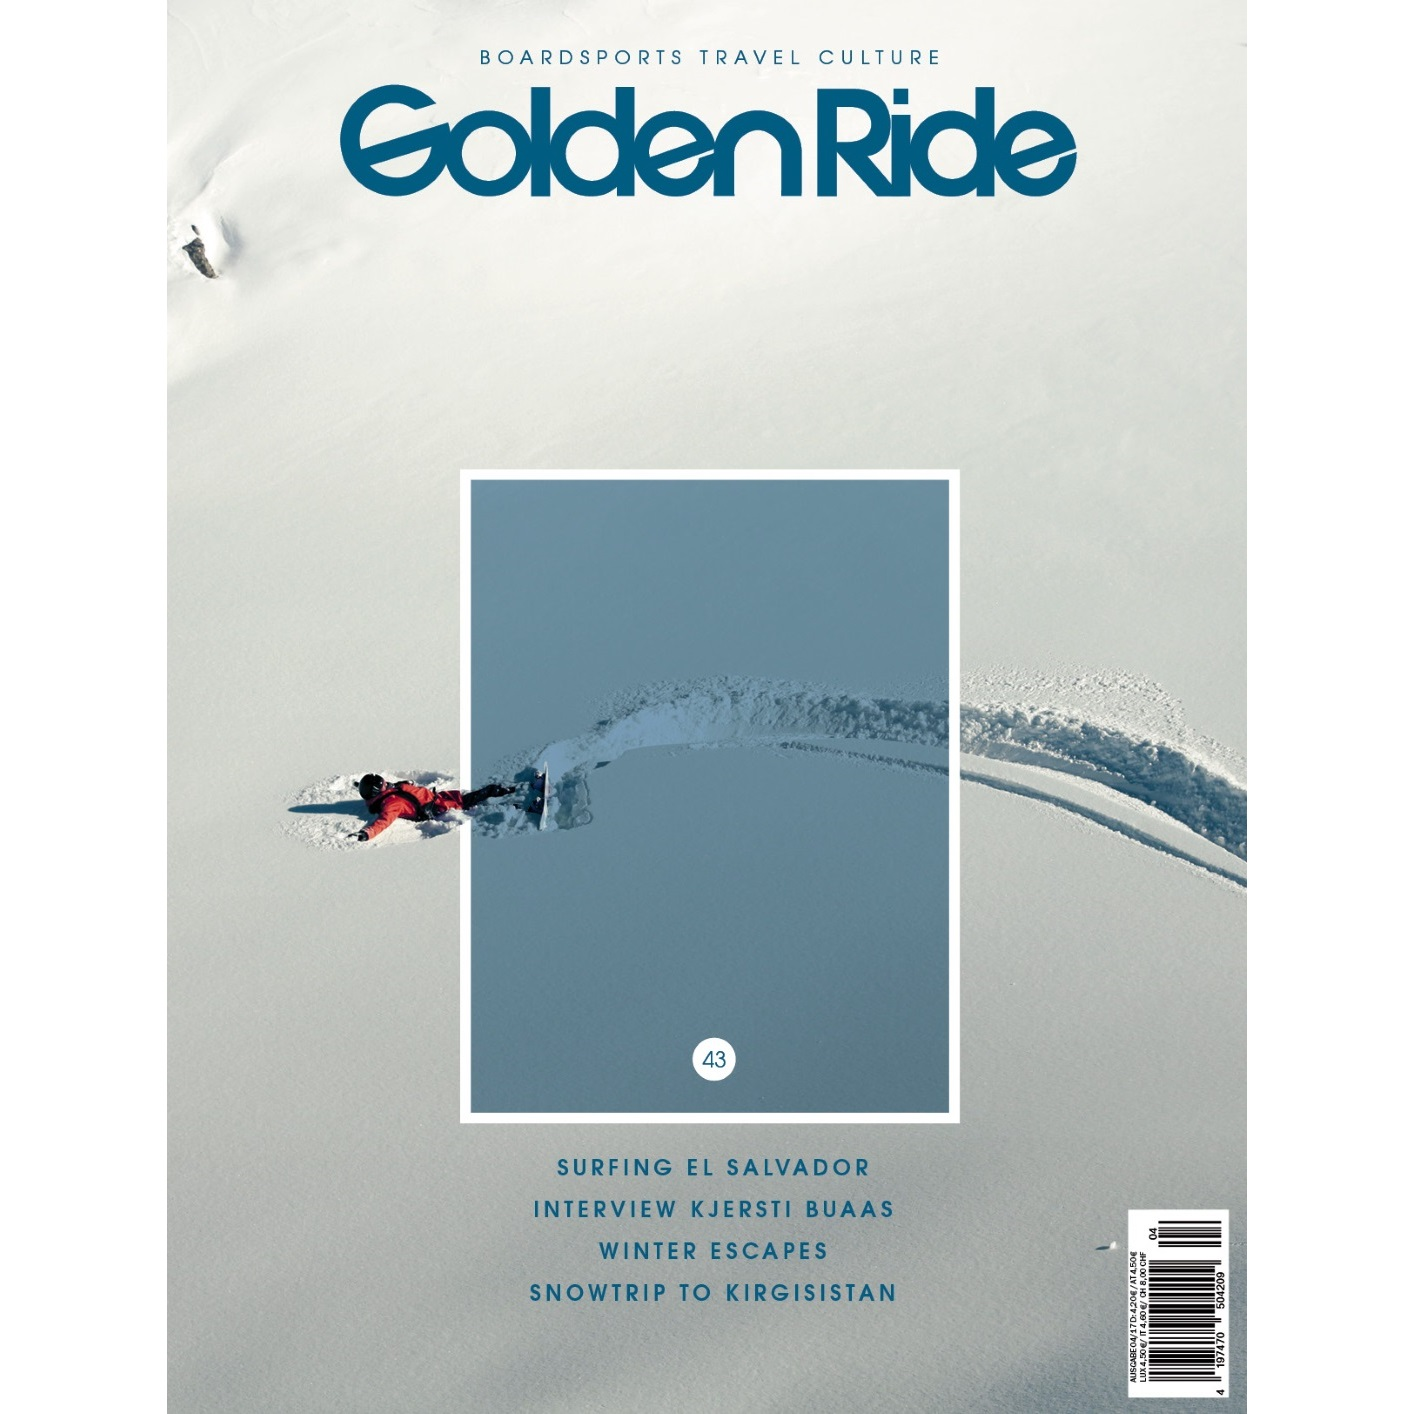 Golden Ride Ausgabe 43